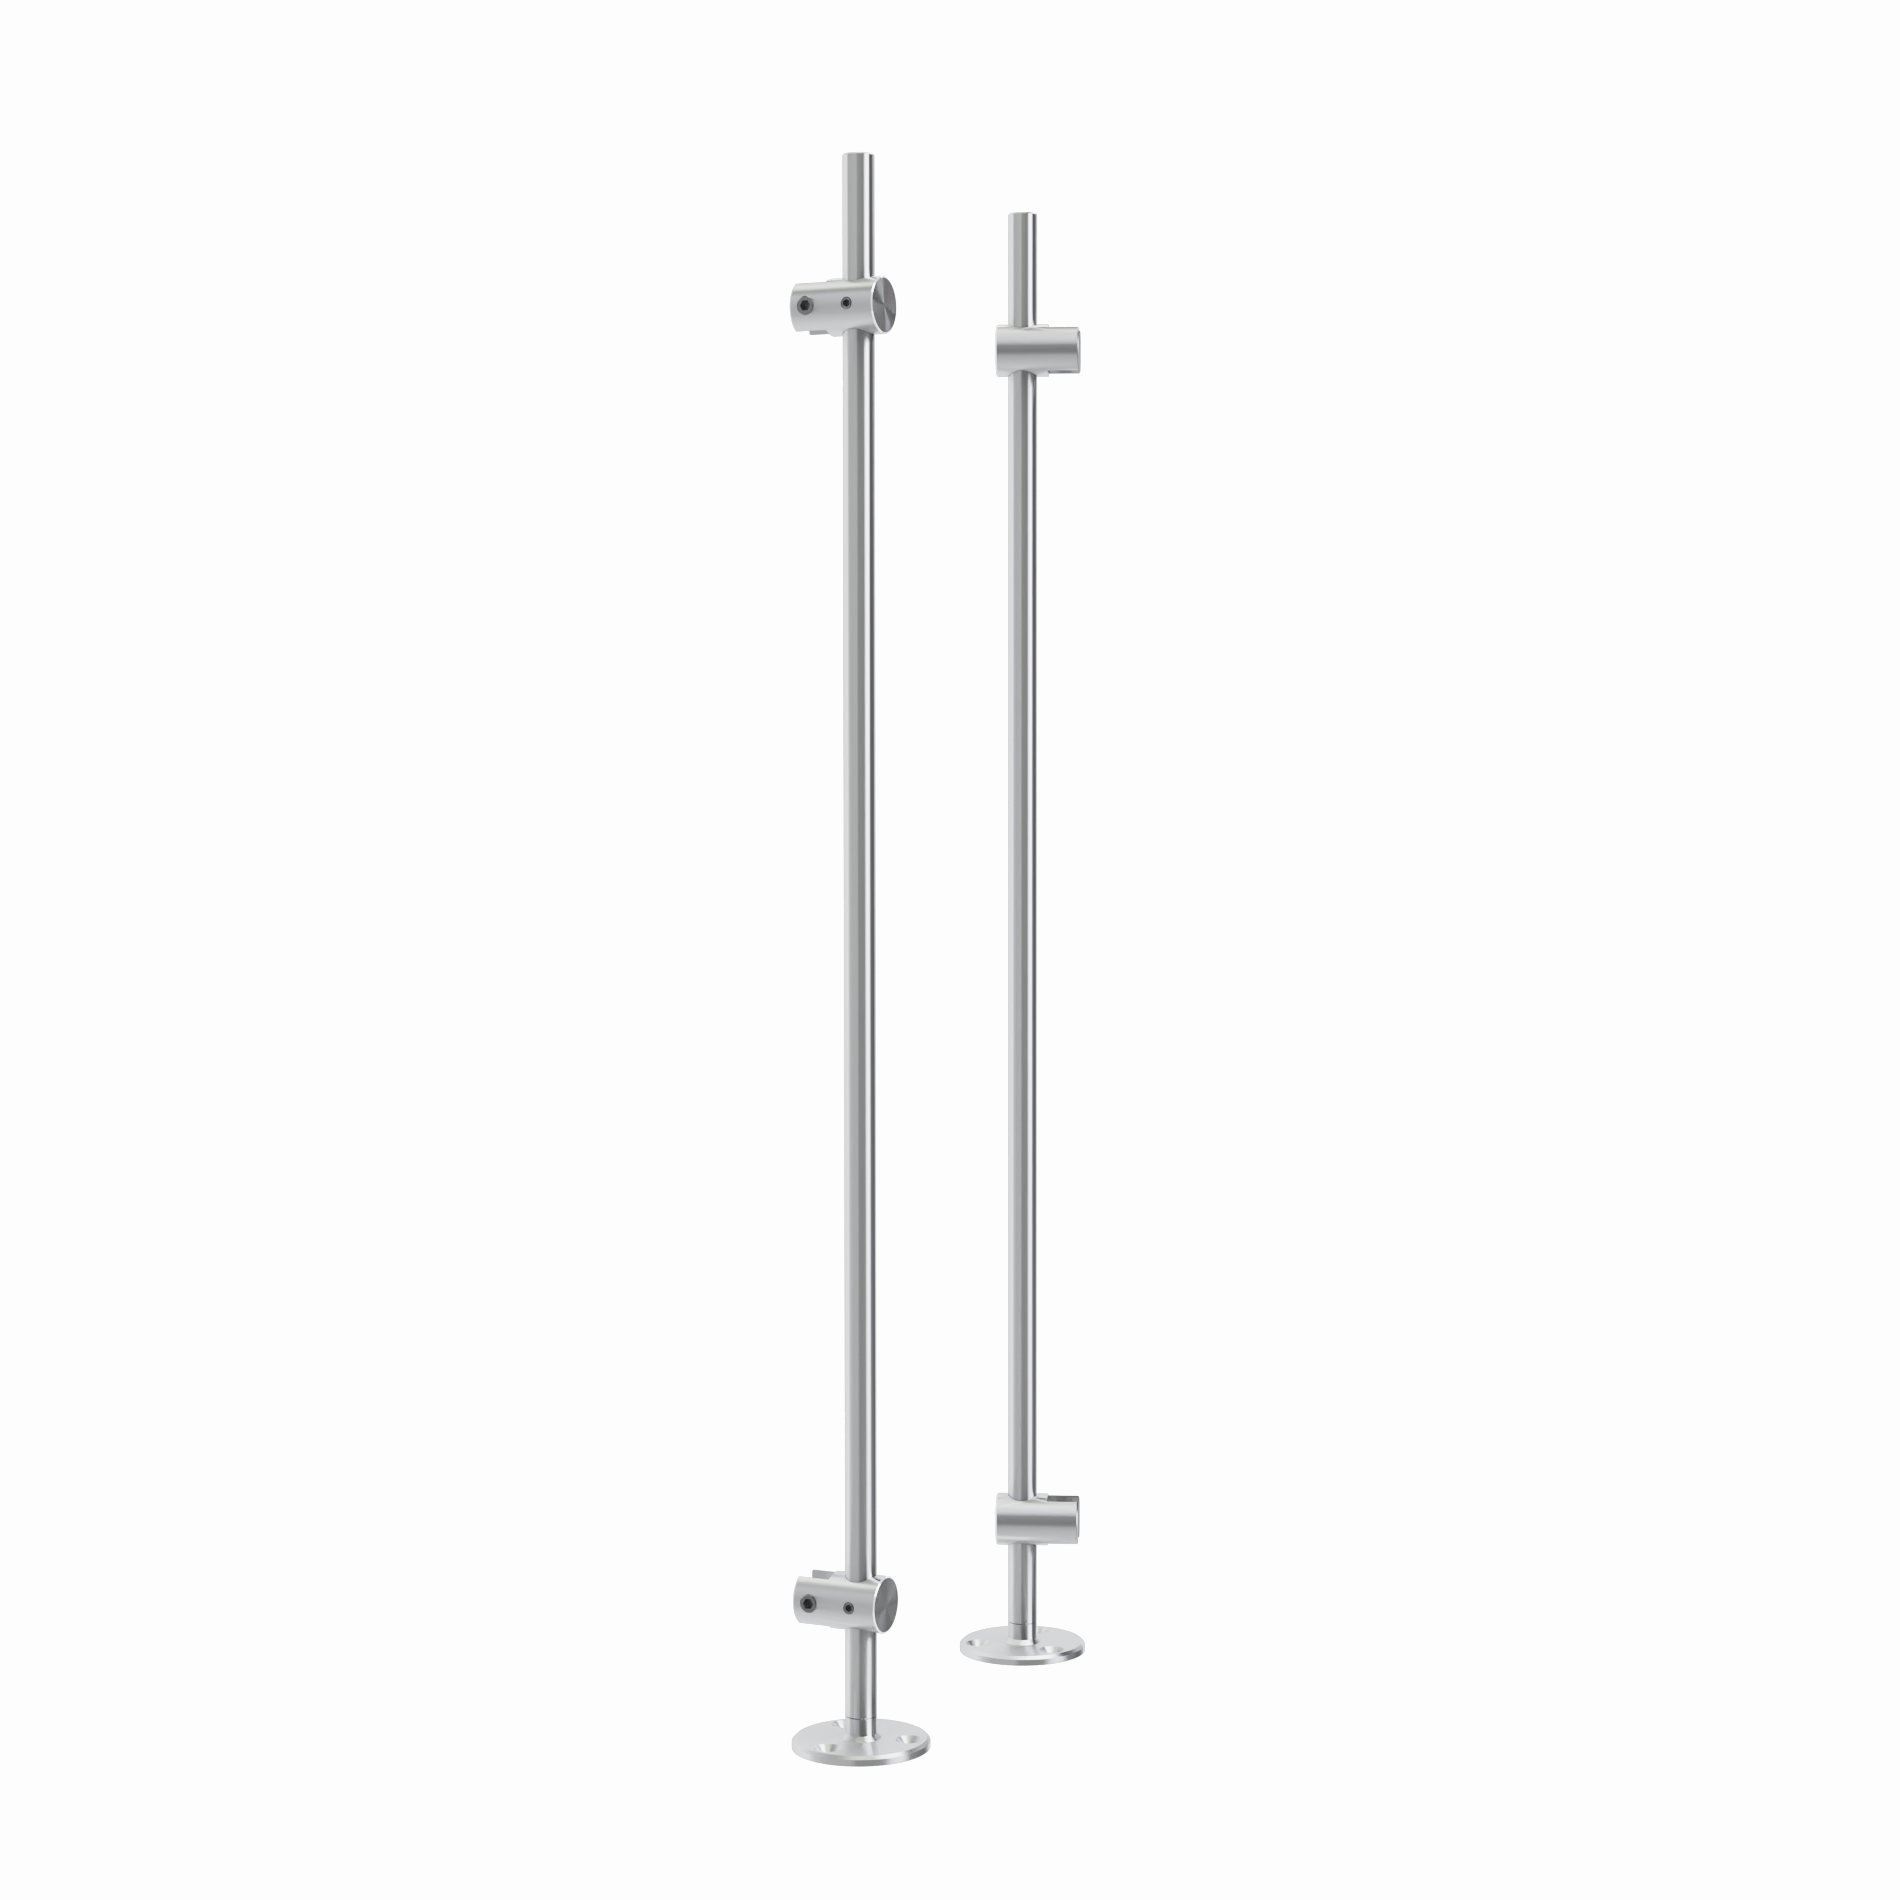 Set of 2, 3/8'' Diameter Rod Projecting Mount, Aluminum Clear Anodized Finish, 20'' Long w/ 3 Holes Mounting Plate, to be installed with screws (Included) or double sided tape (not included). Hold up to 5/16'' material thickness.